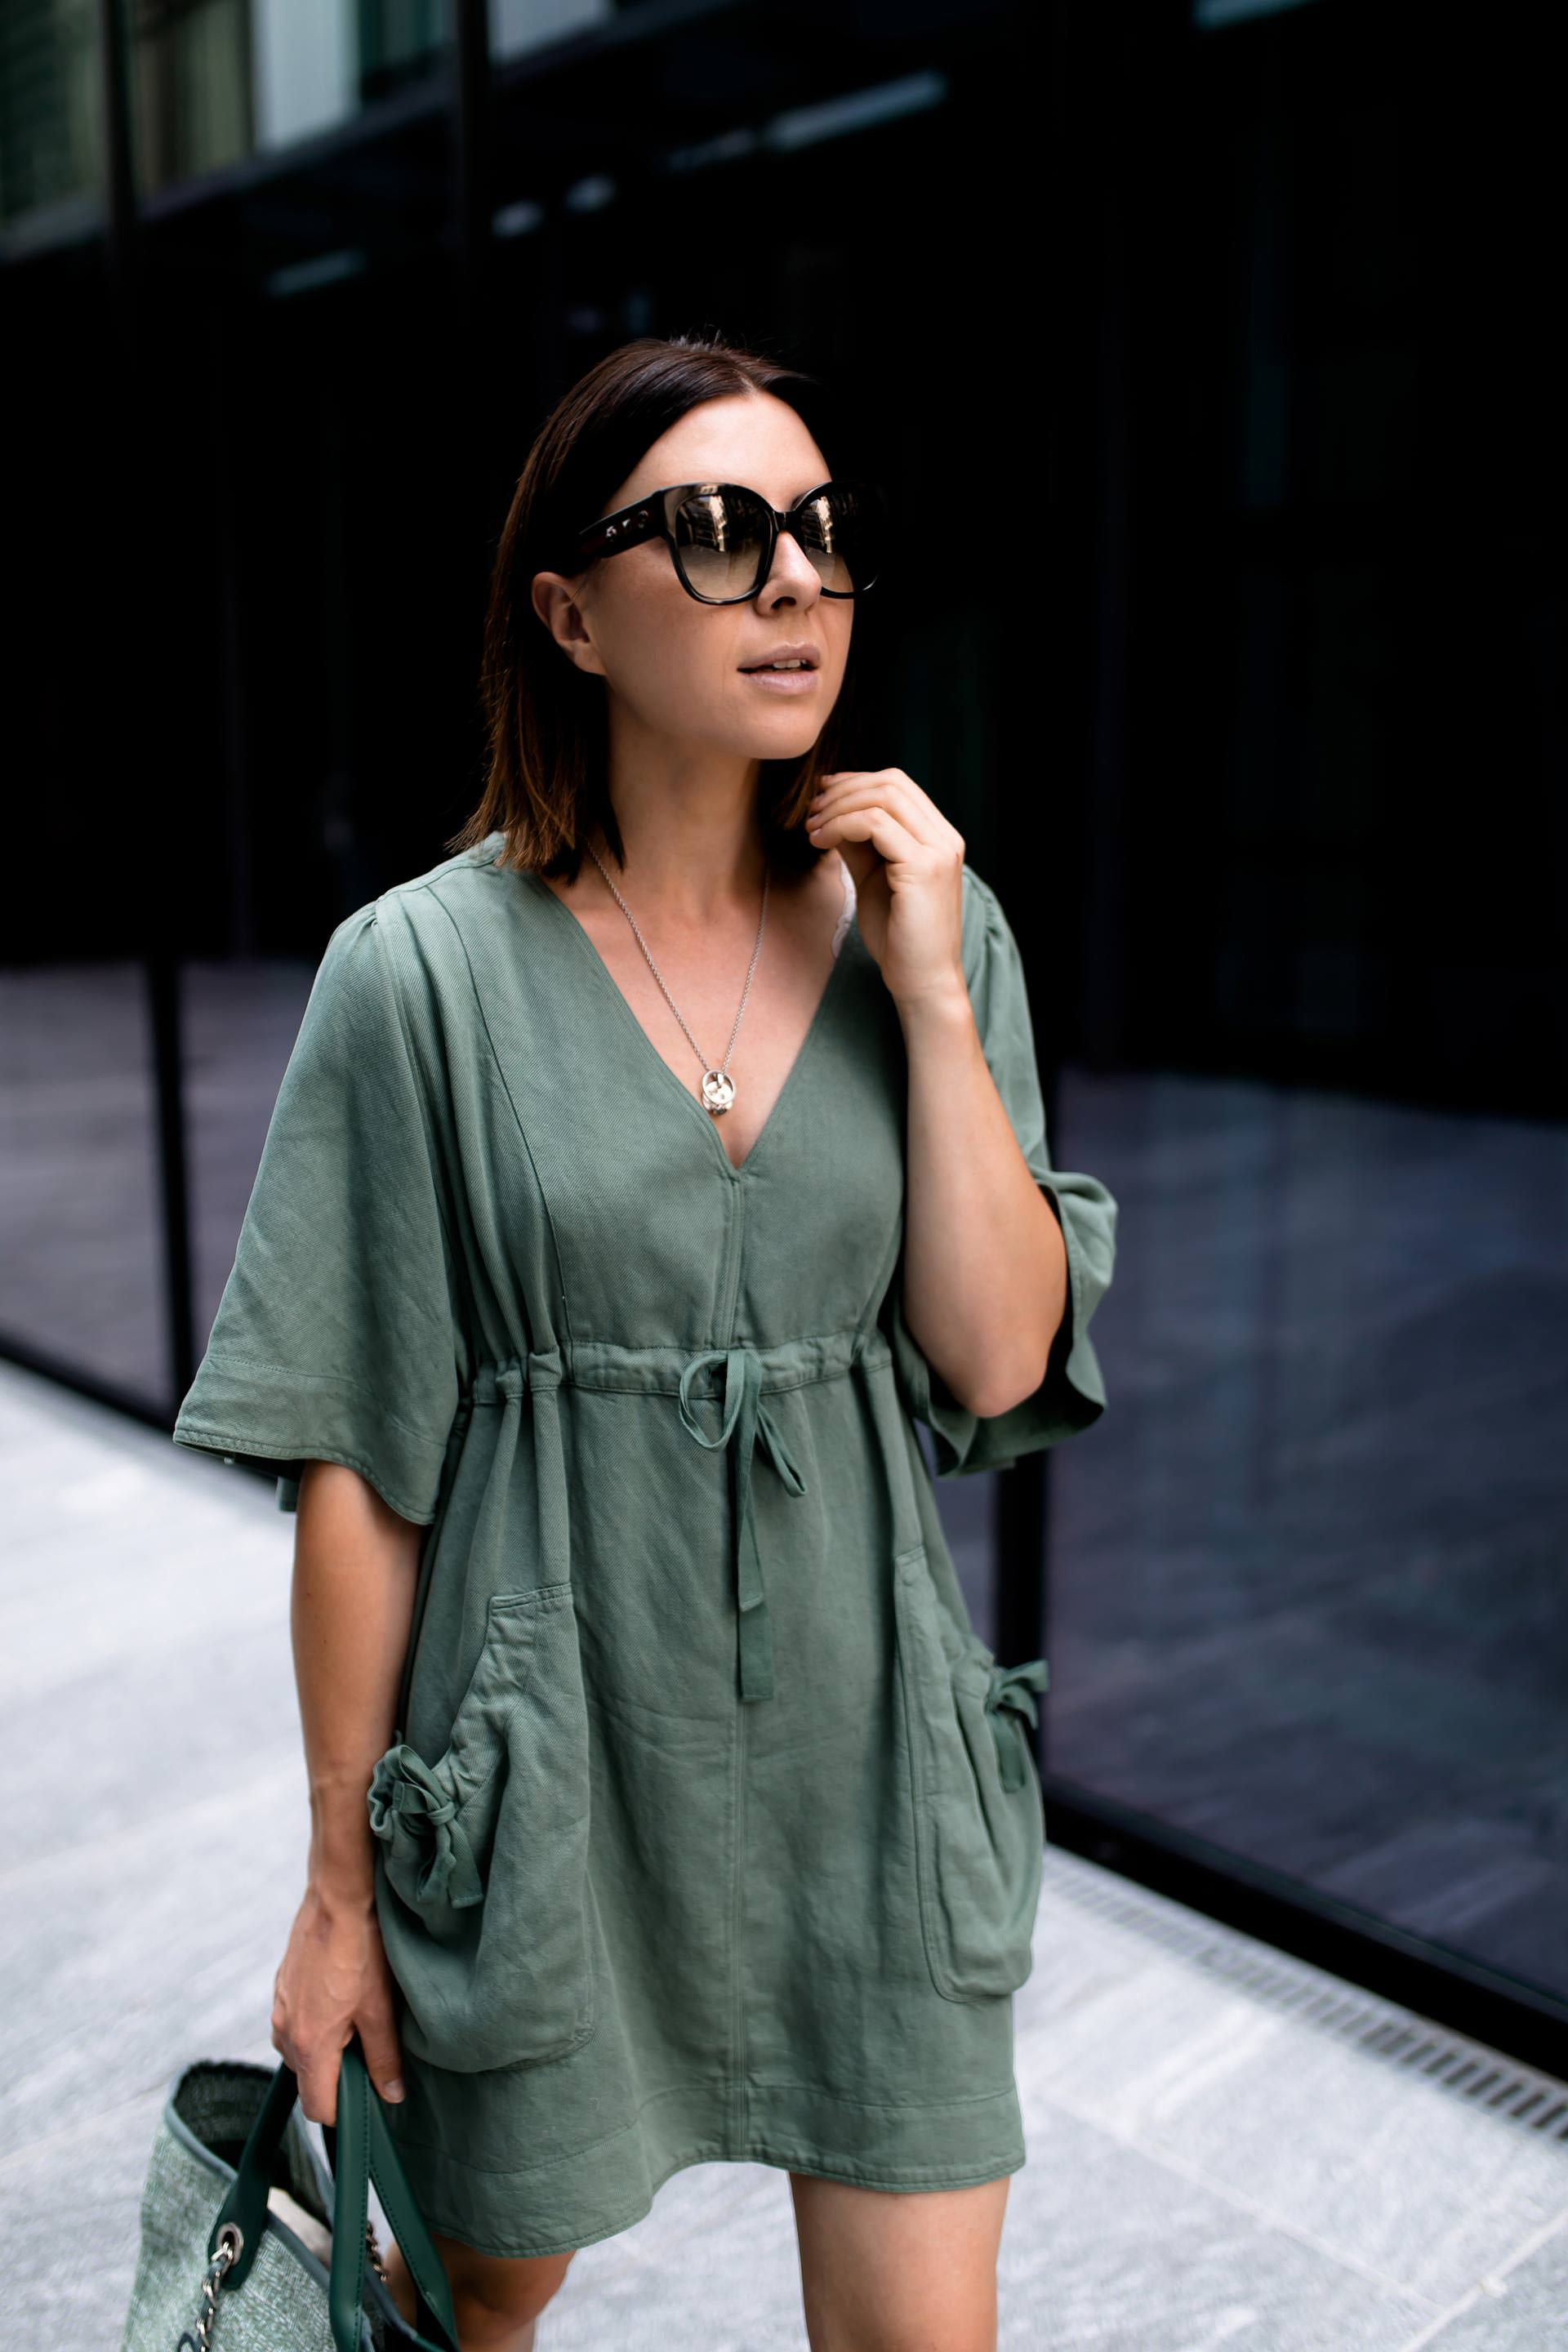 enthält unbeauftragte Werbung, Sommer Outfit mit Kleid, Isabel Marant Outfit, Isabel Marant Wendell Kleid, High Heels im Alltag tragen, Chanel Deauville Shopper, Sommer Kleid kombinieren, Streetstyle, Outfit of the Day, Modeblogger, www.whoismocca.com #isabelmarant #ootd #sommeroutfit #styling #fashionblogger #chanel